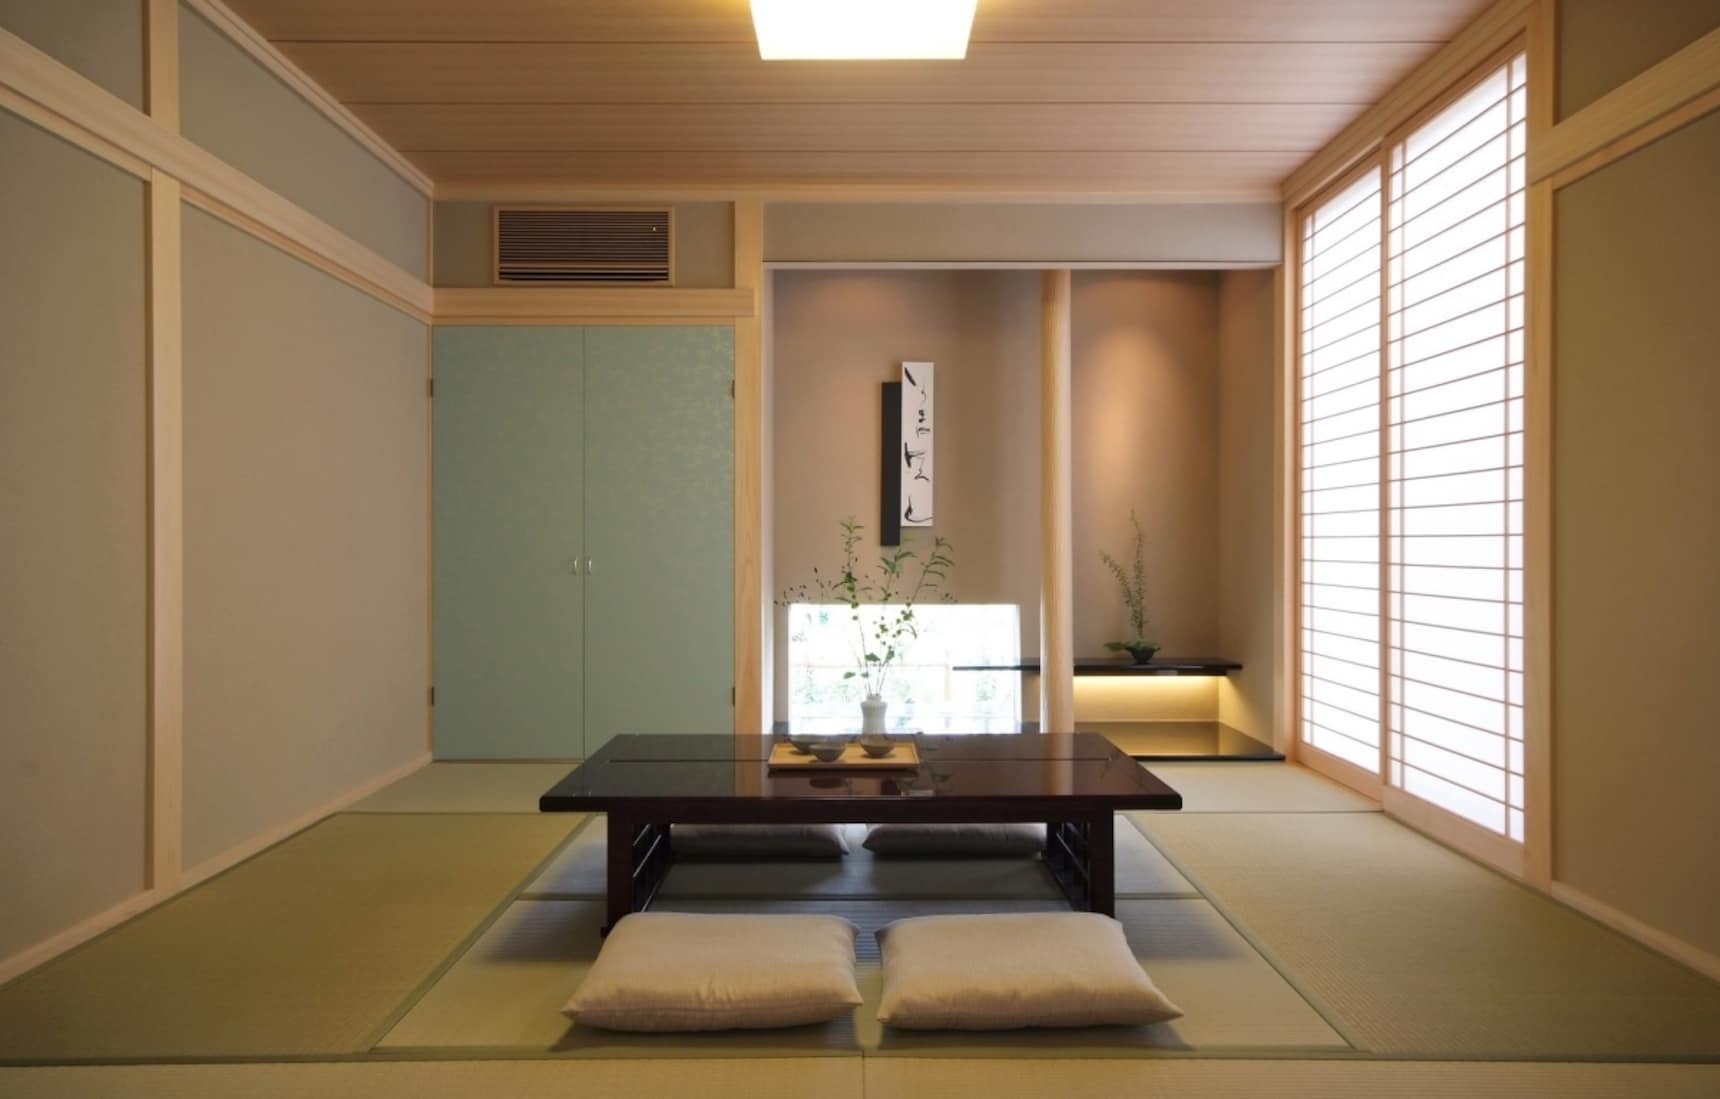 Glean the secrets of japanese interior design all about for Apartment japan design